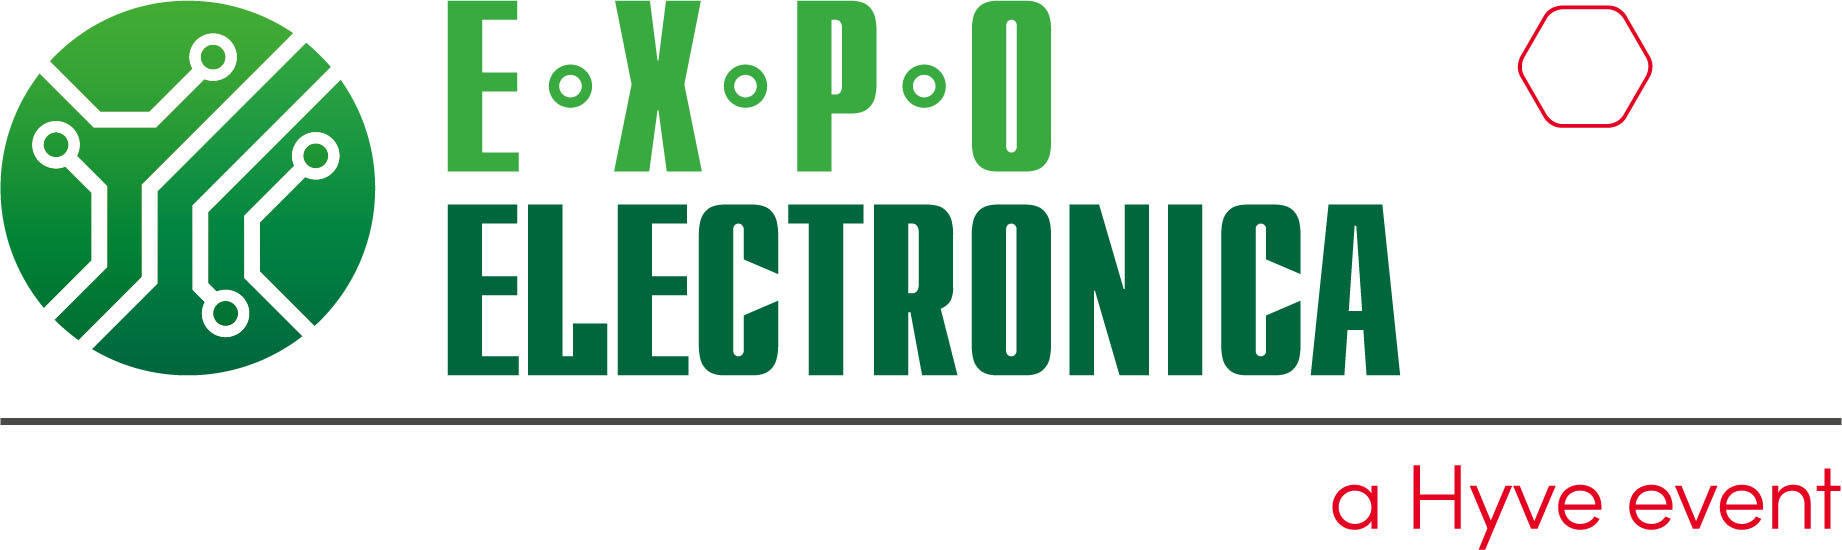 expoelectronica h red